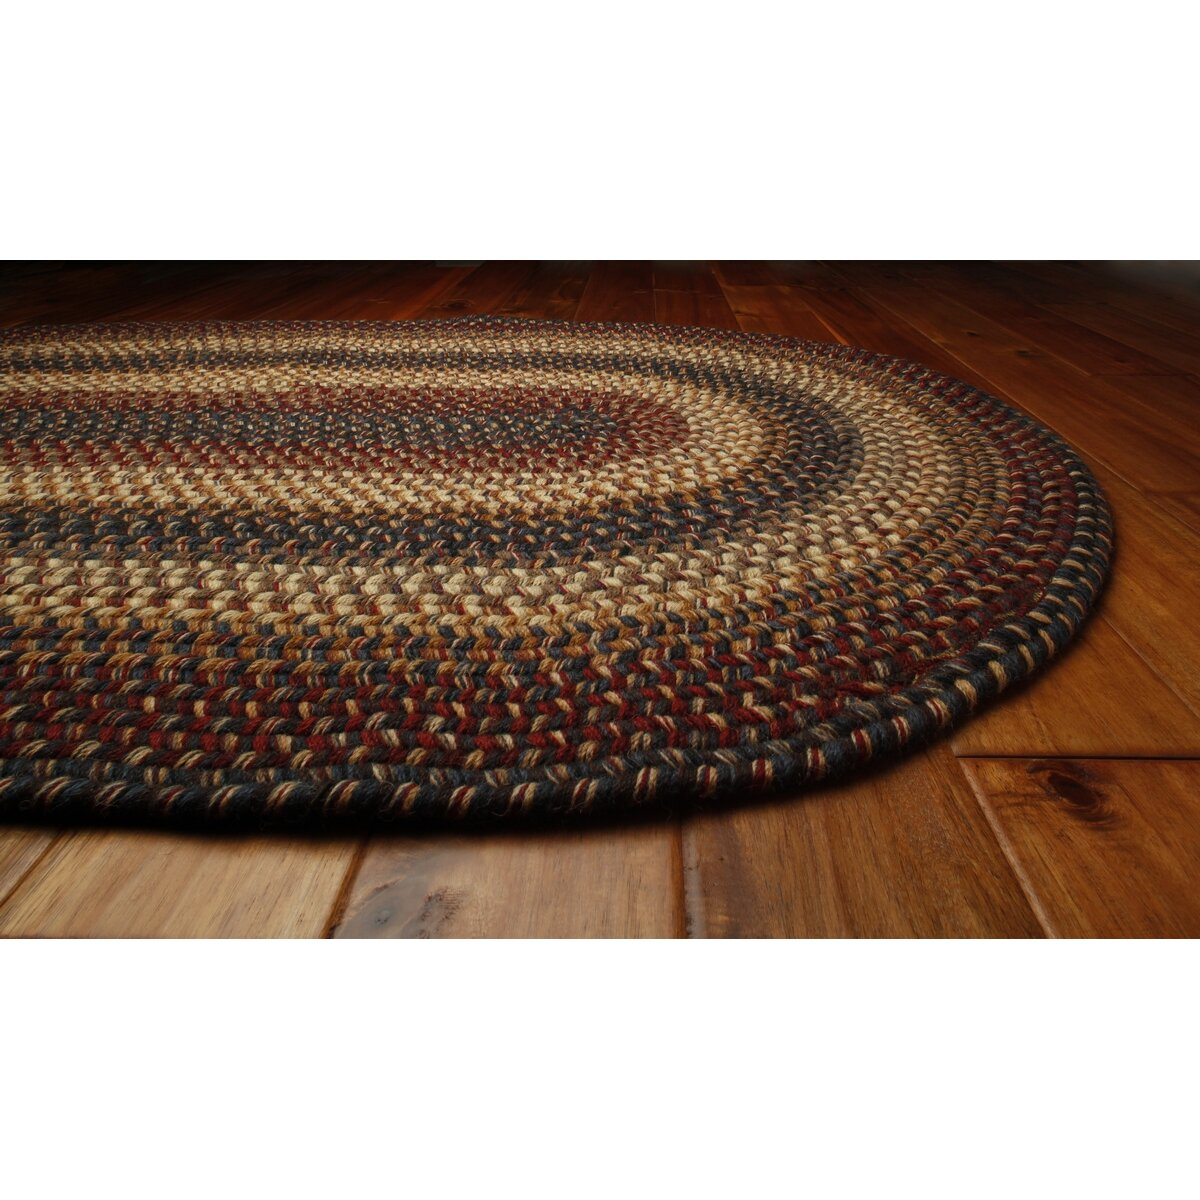 Homespice decor wool cambridge area rug reviews wayfair for International home decor rugs